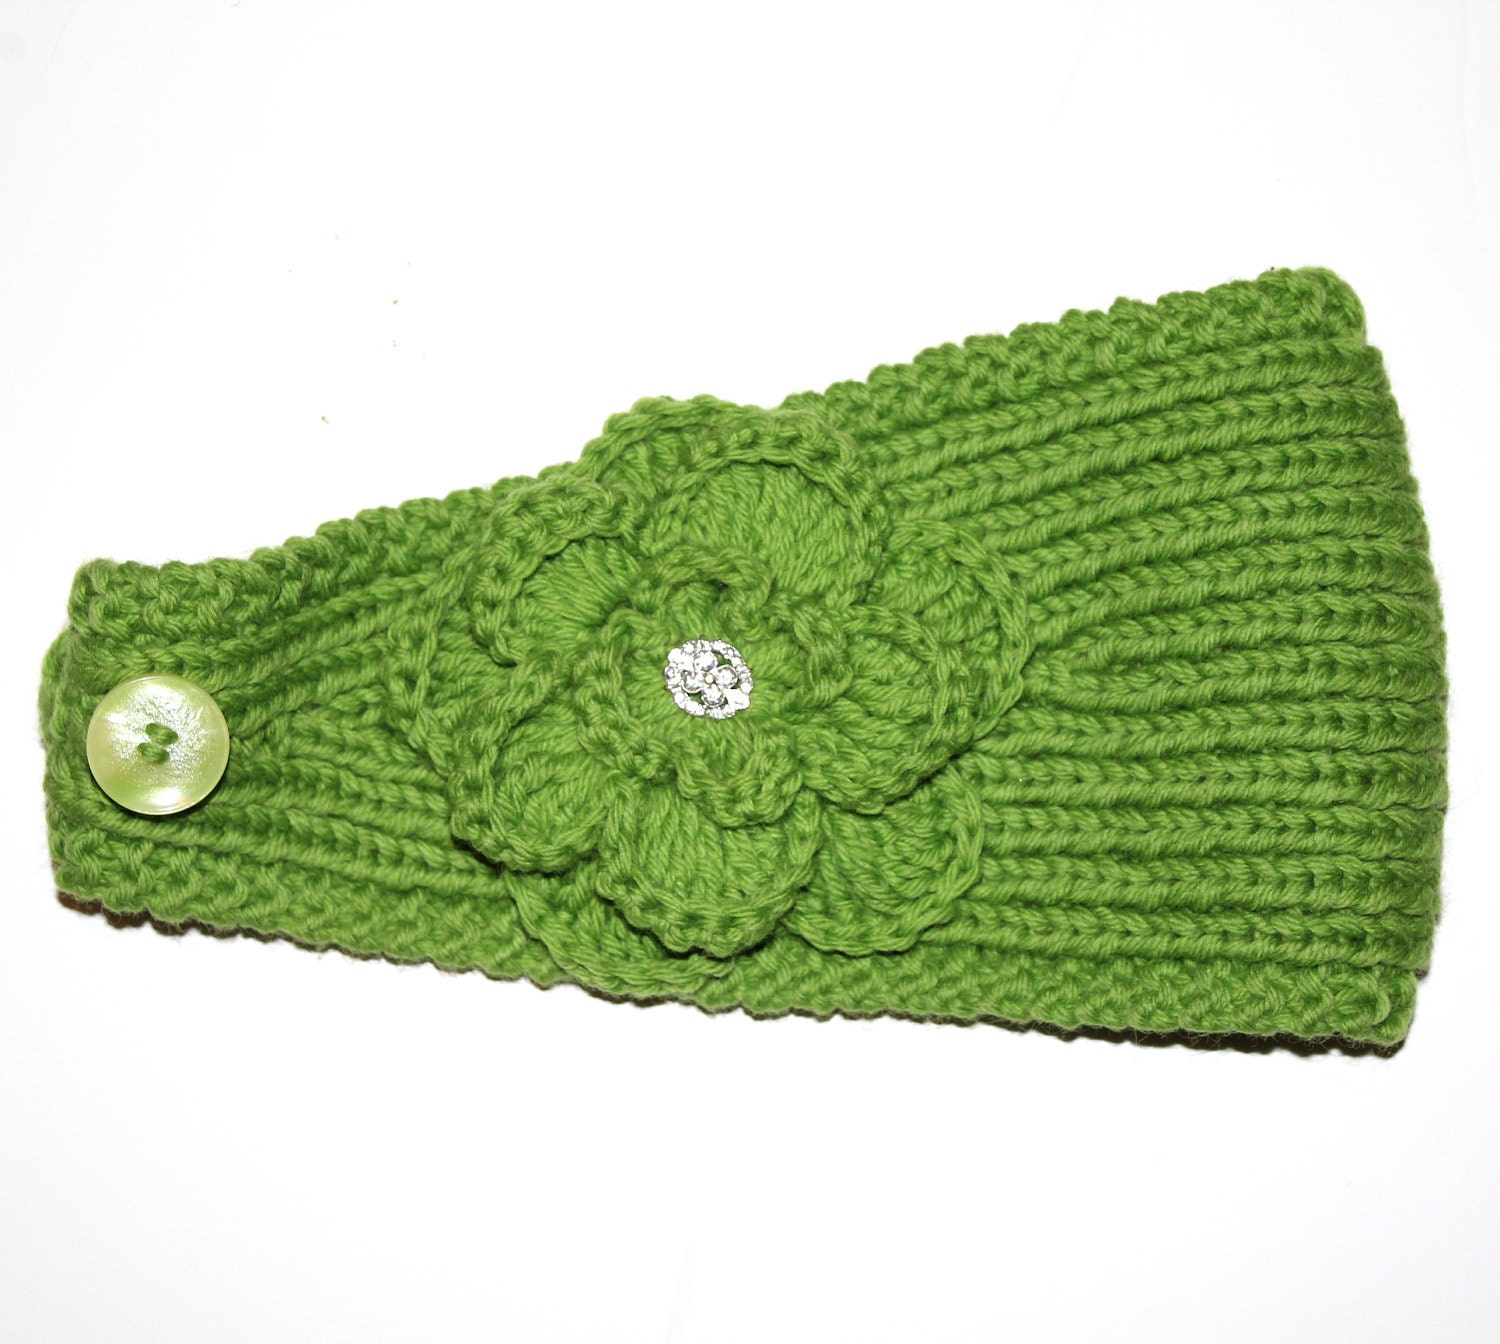 PATTERN Knitting Pattern Headband with Crochet Or Knitted